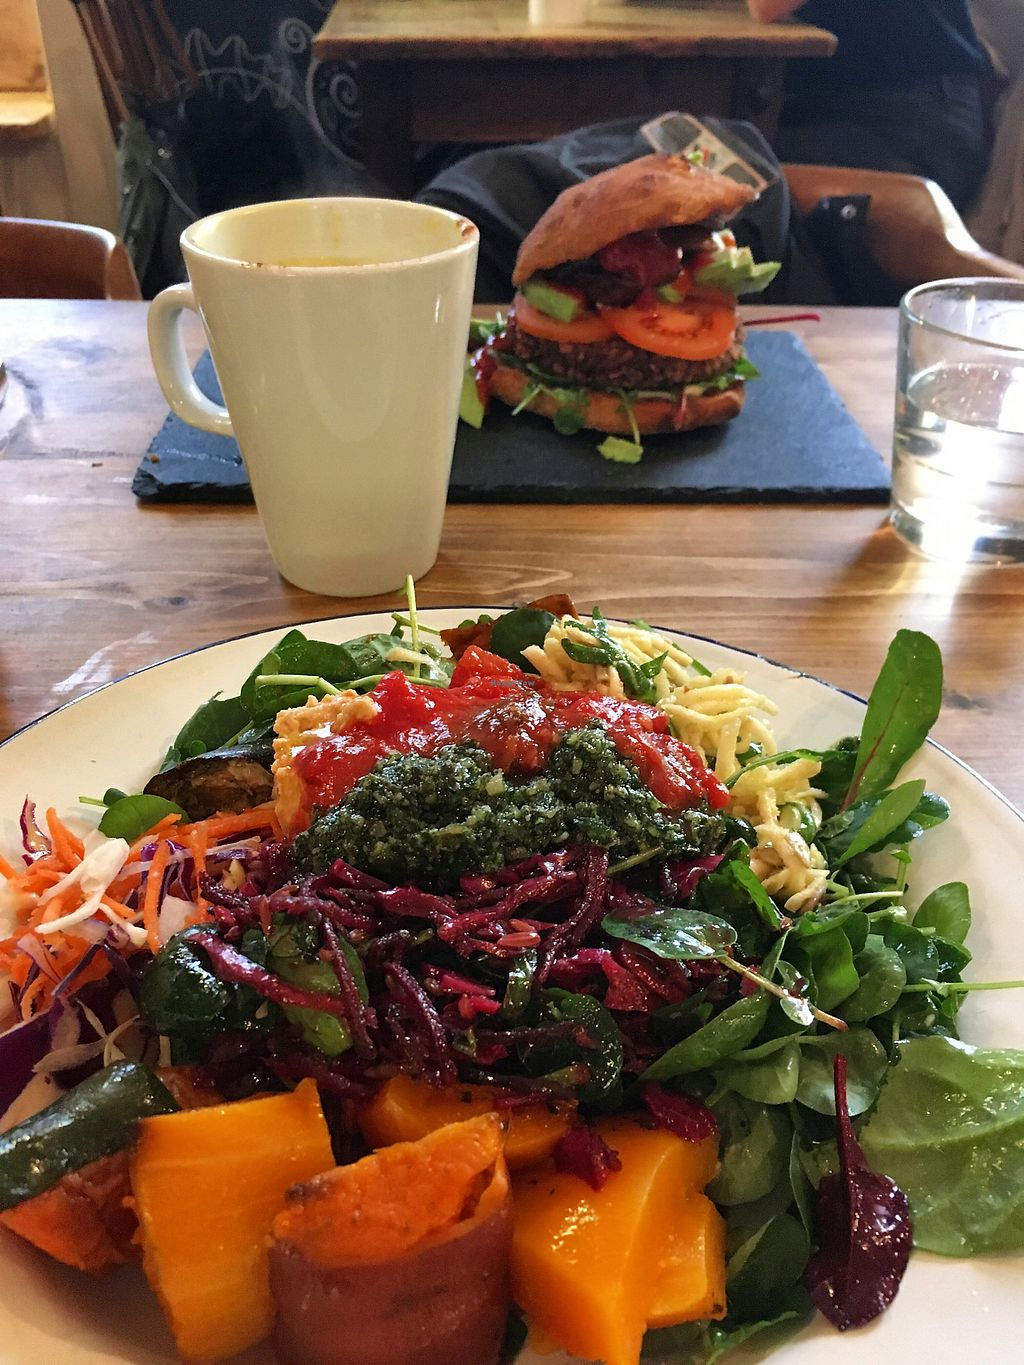 "Photo of Beyond the Kale  by <a href=""/members/profile/FranMcgarryArtist"">FranMcgarryArtist</a> <br/>Vegan Salad & Burger. ?  <br/> January 22, 2018  - <a href='/contact/abuse/image/57927/349695'>Report</a>"